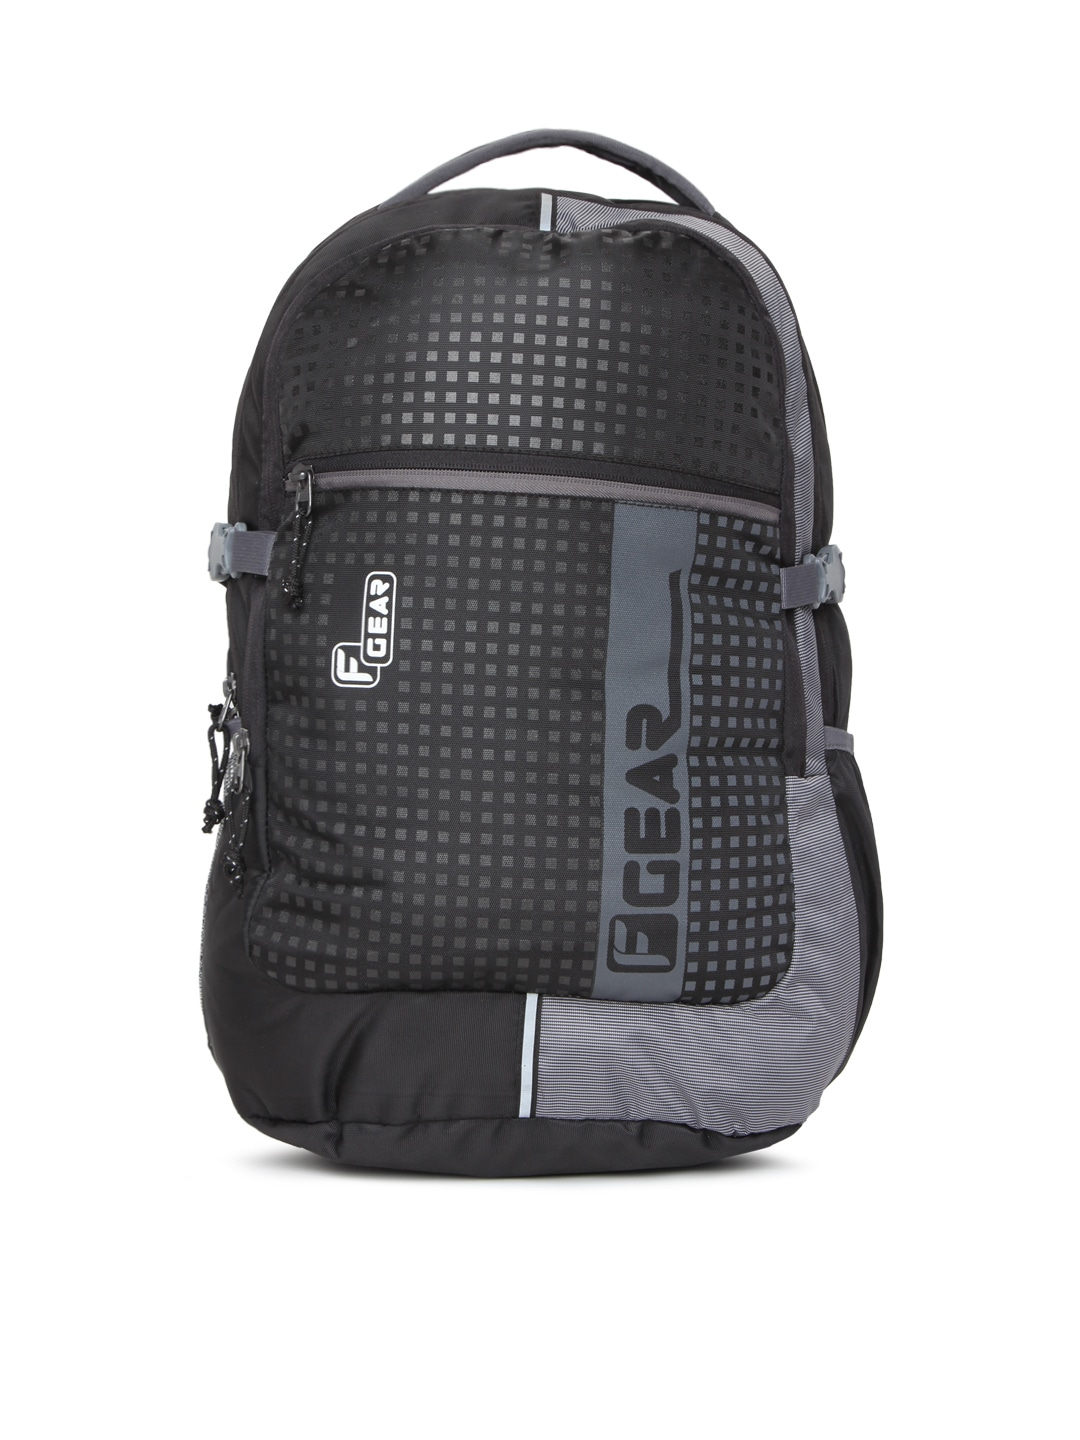 Gear Accessories Backpacks - Buy Gear Accessories Backpacks online in India ed0a3ff270d08